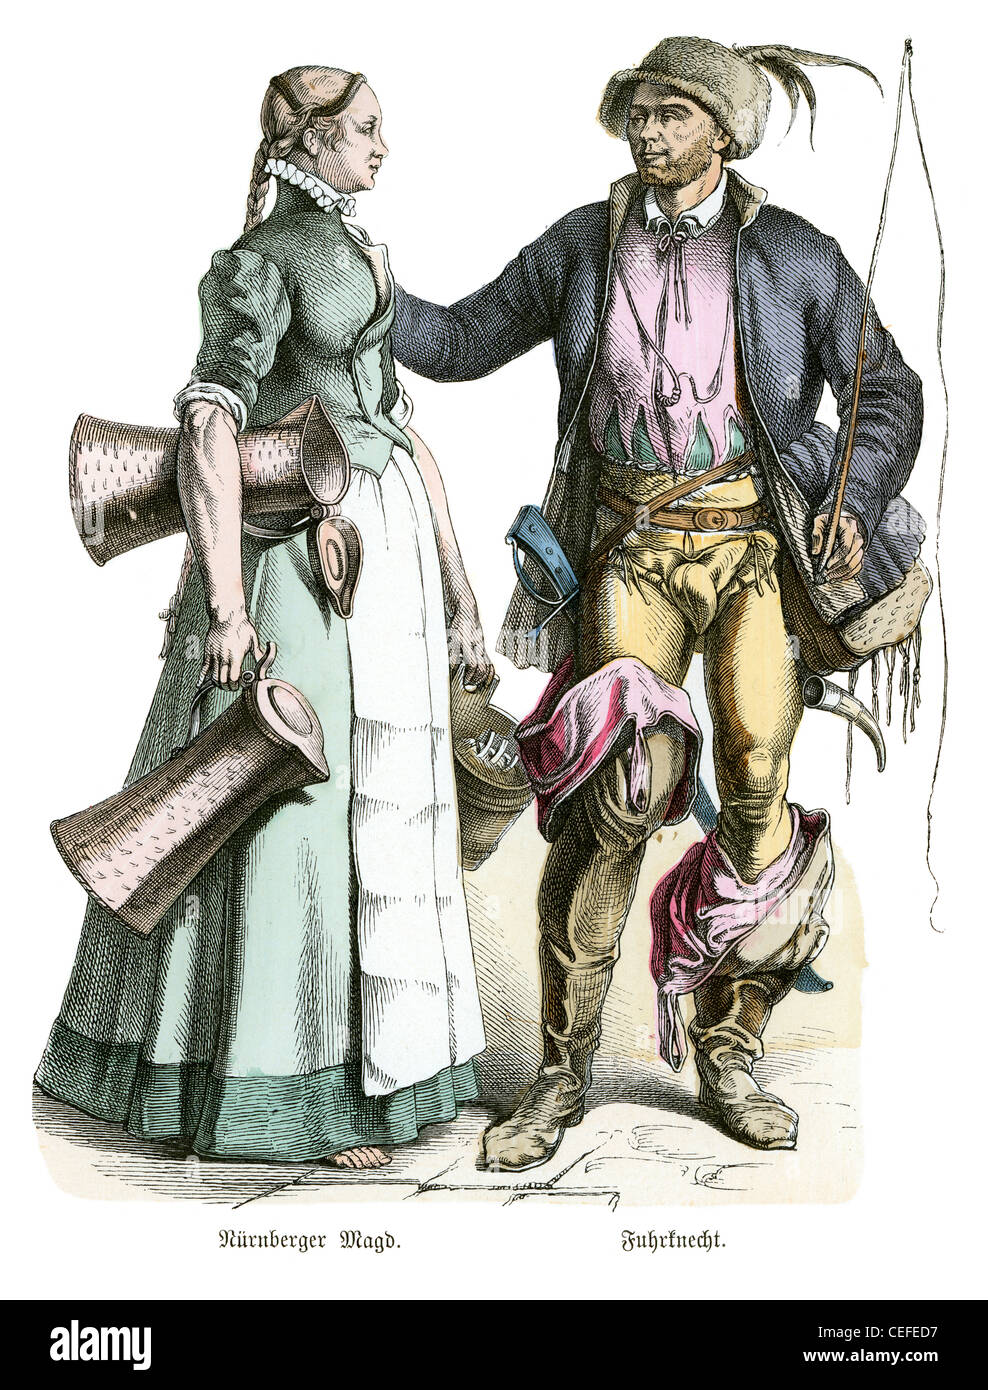 A German maid and a driver in the fashion of the 16th century - Stock Image